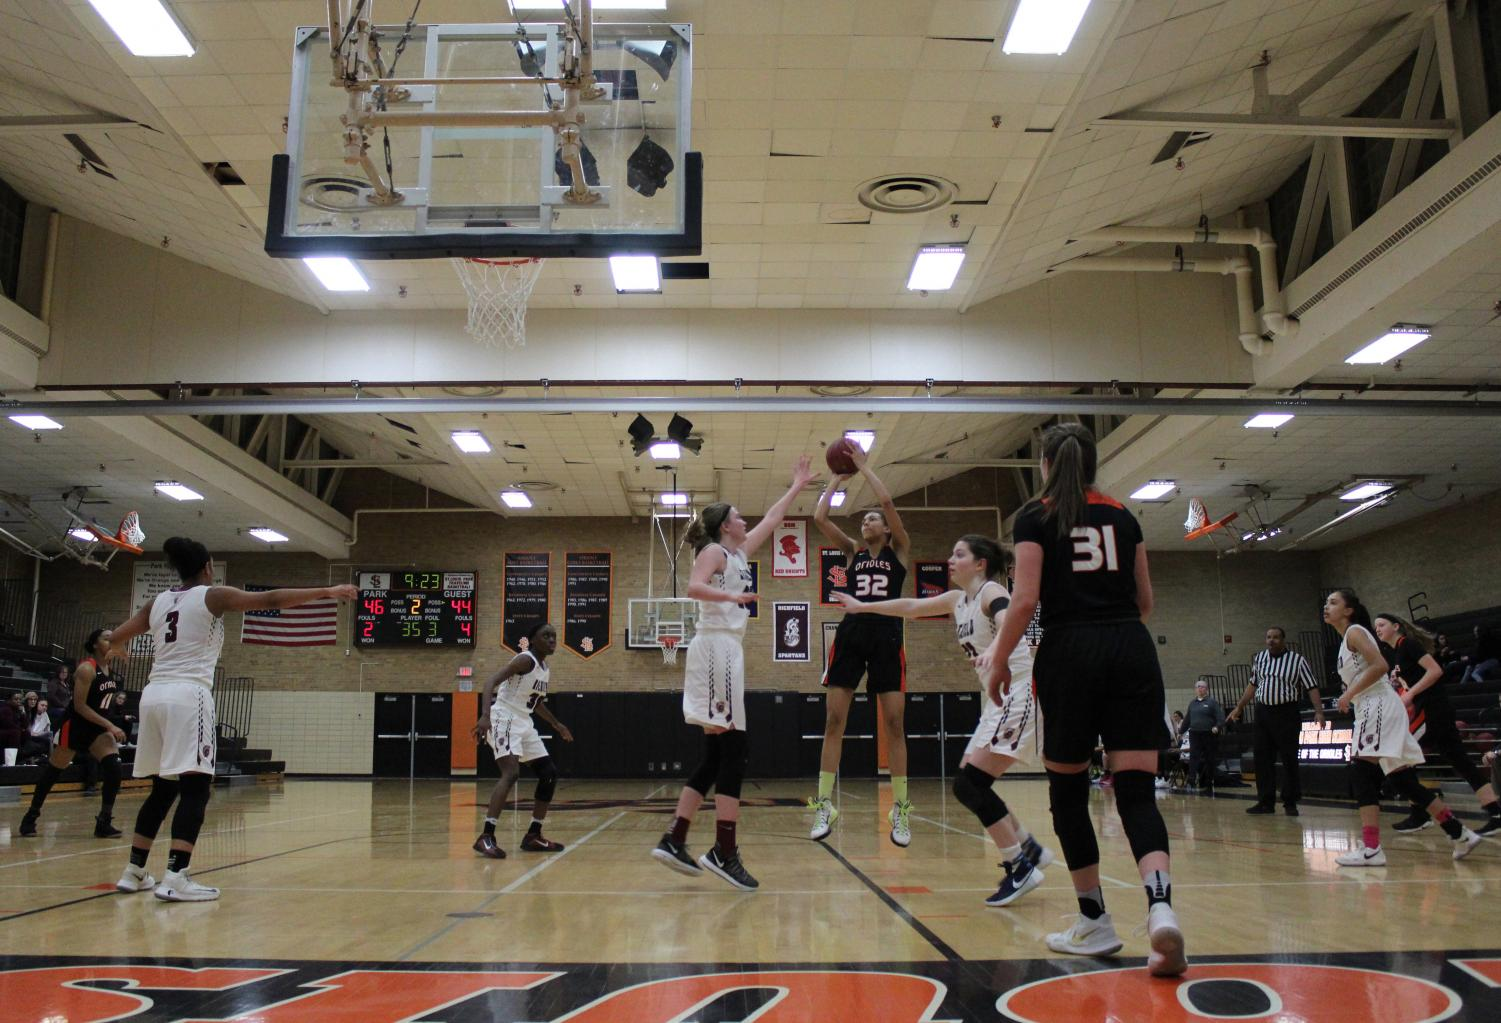 Freshmen Kendall Coley shoots over defender from Chaska during the game on Feb. 15. The Orioles win 71-61.